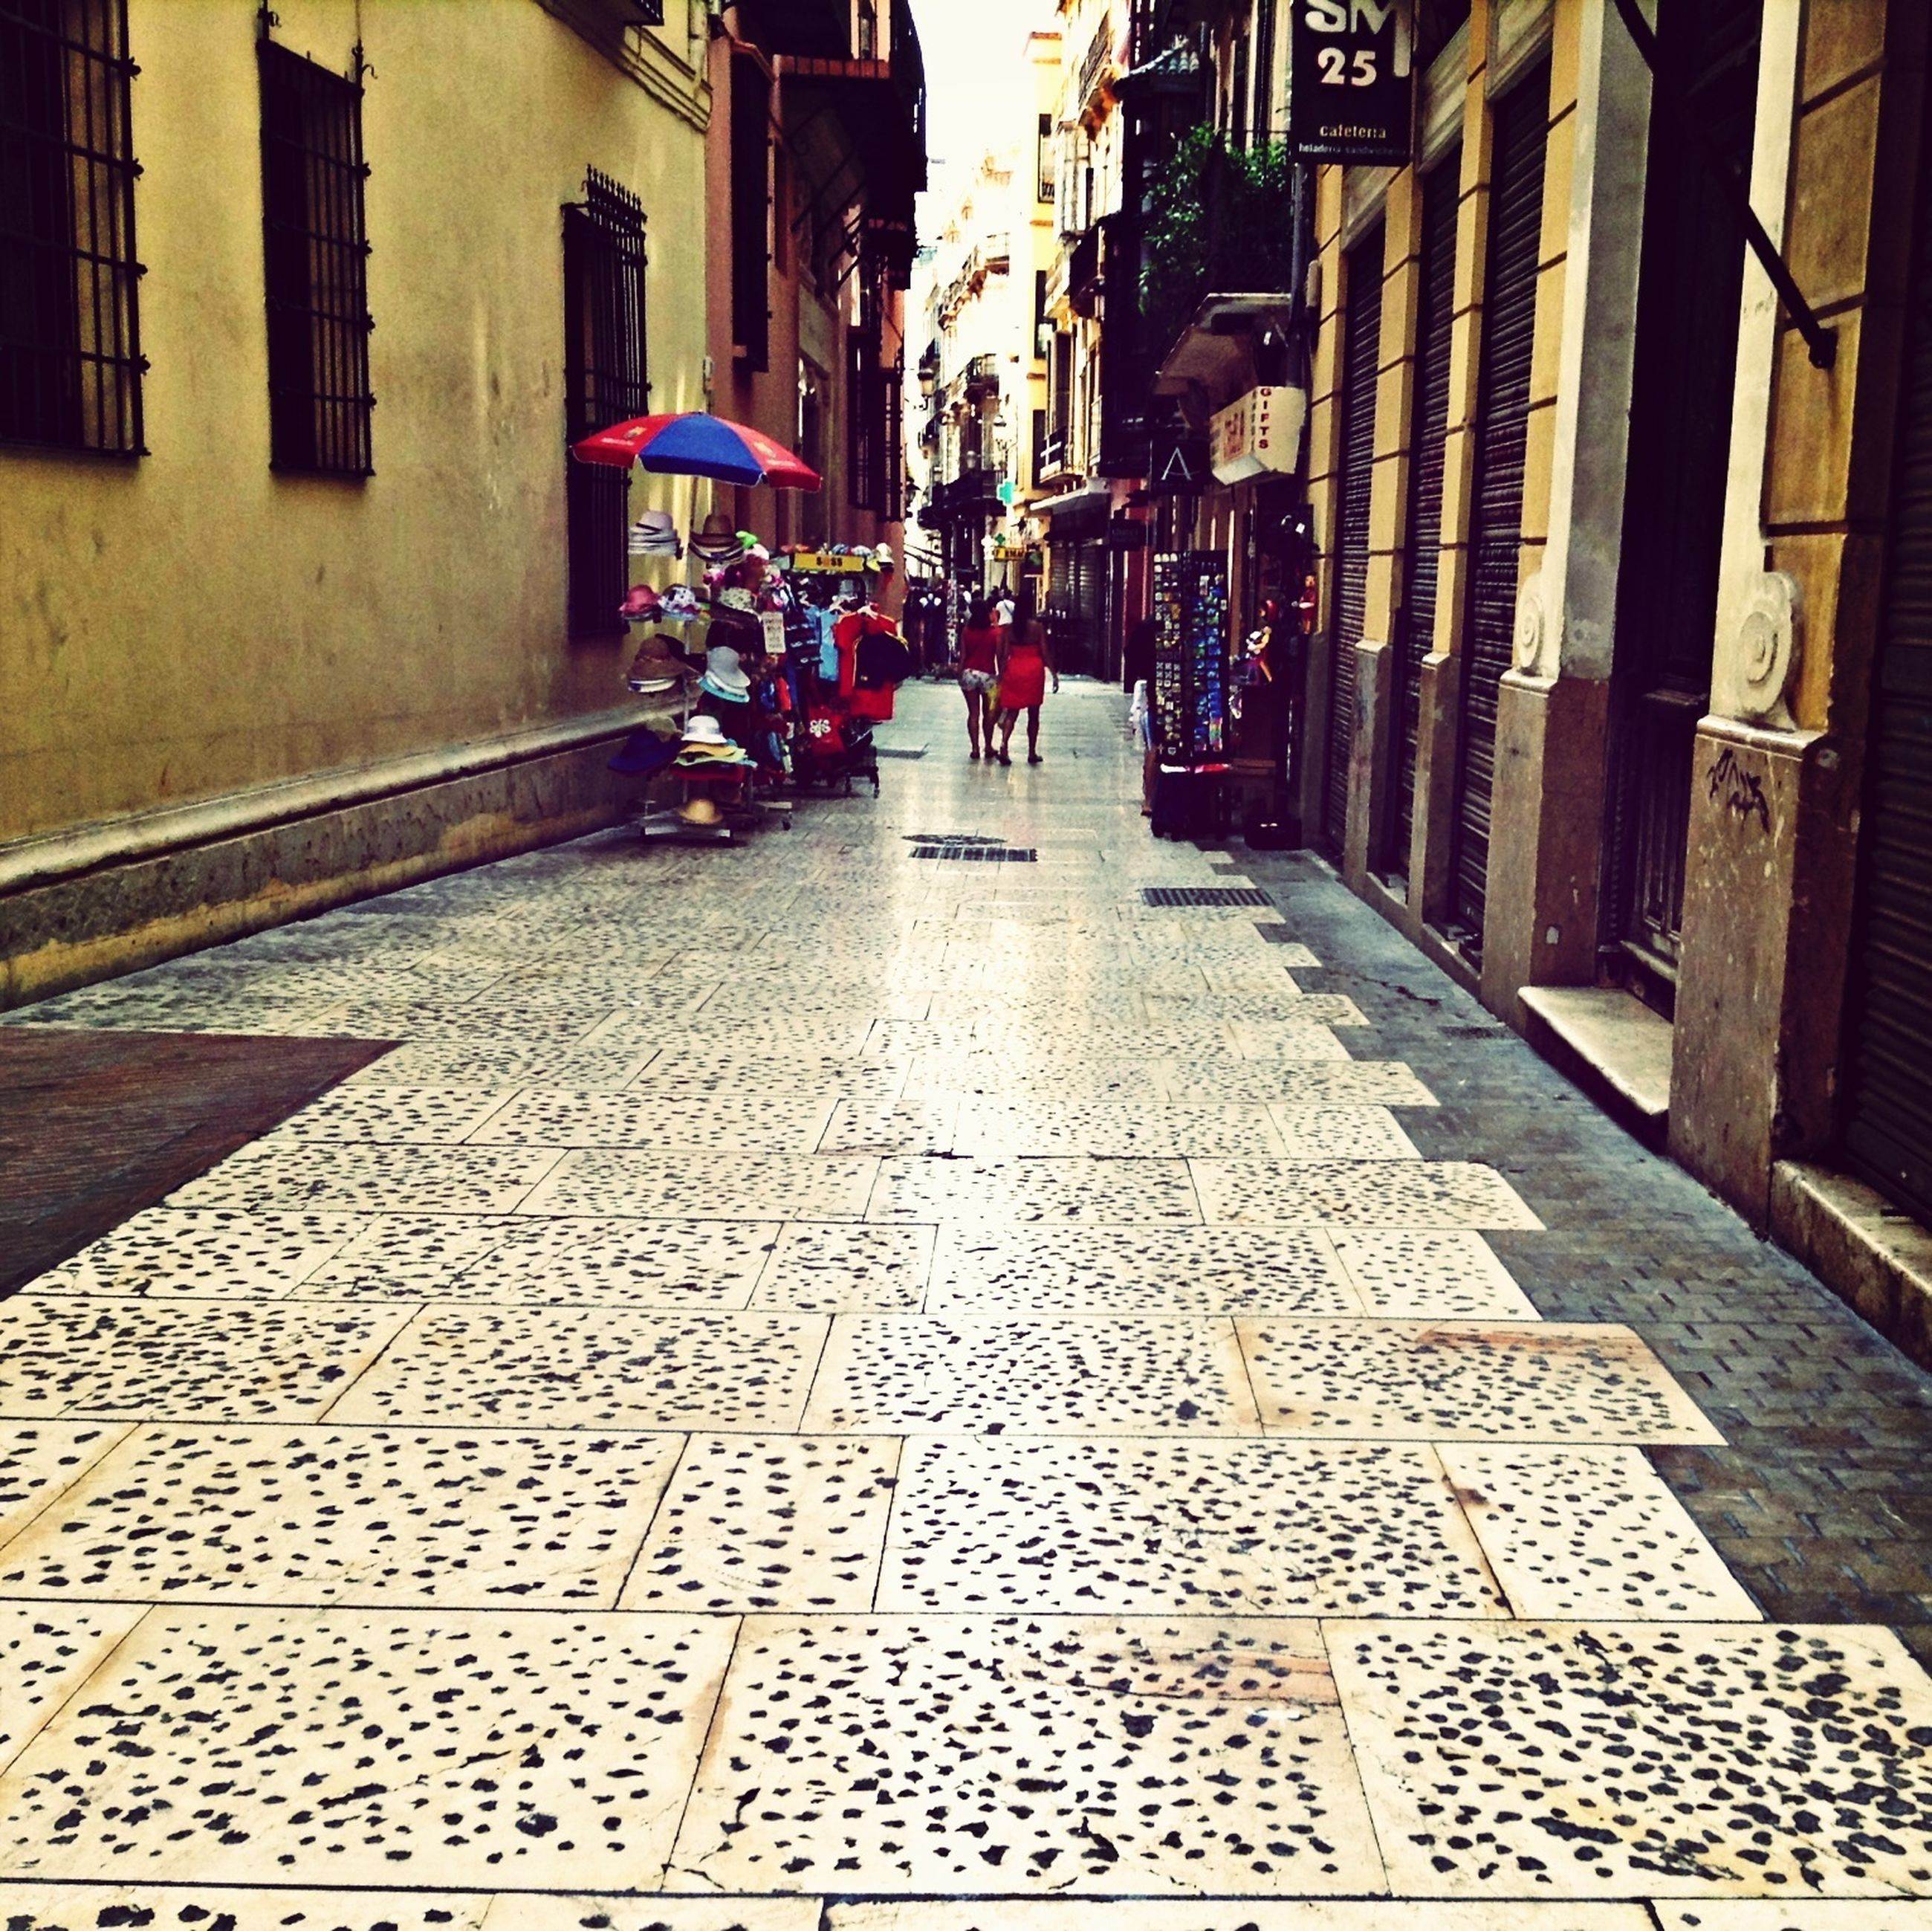 building exterior, architecture, built structure, street, city, the way forward, building, residential building, city life, alley, residential structure, cobblestone, diminishing perspective, city street, incidental people, transportation, large group of people, day, walking